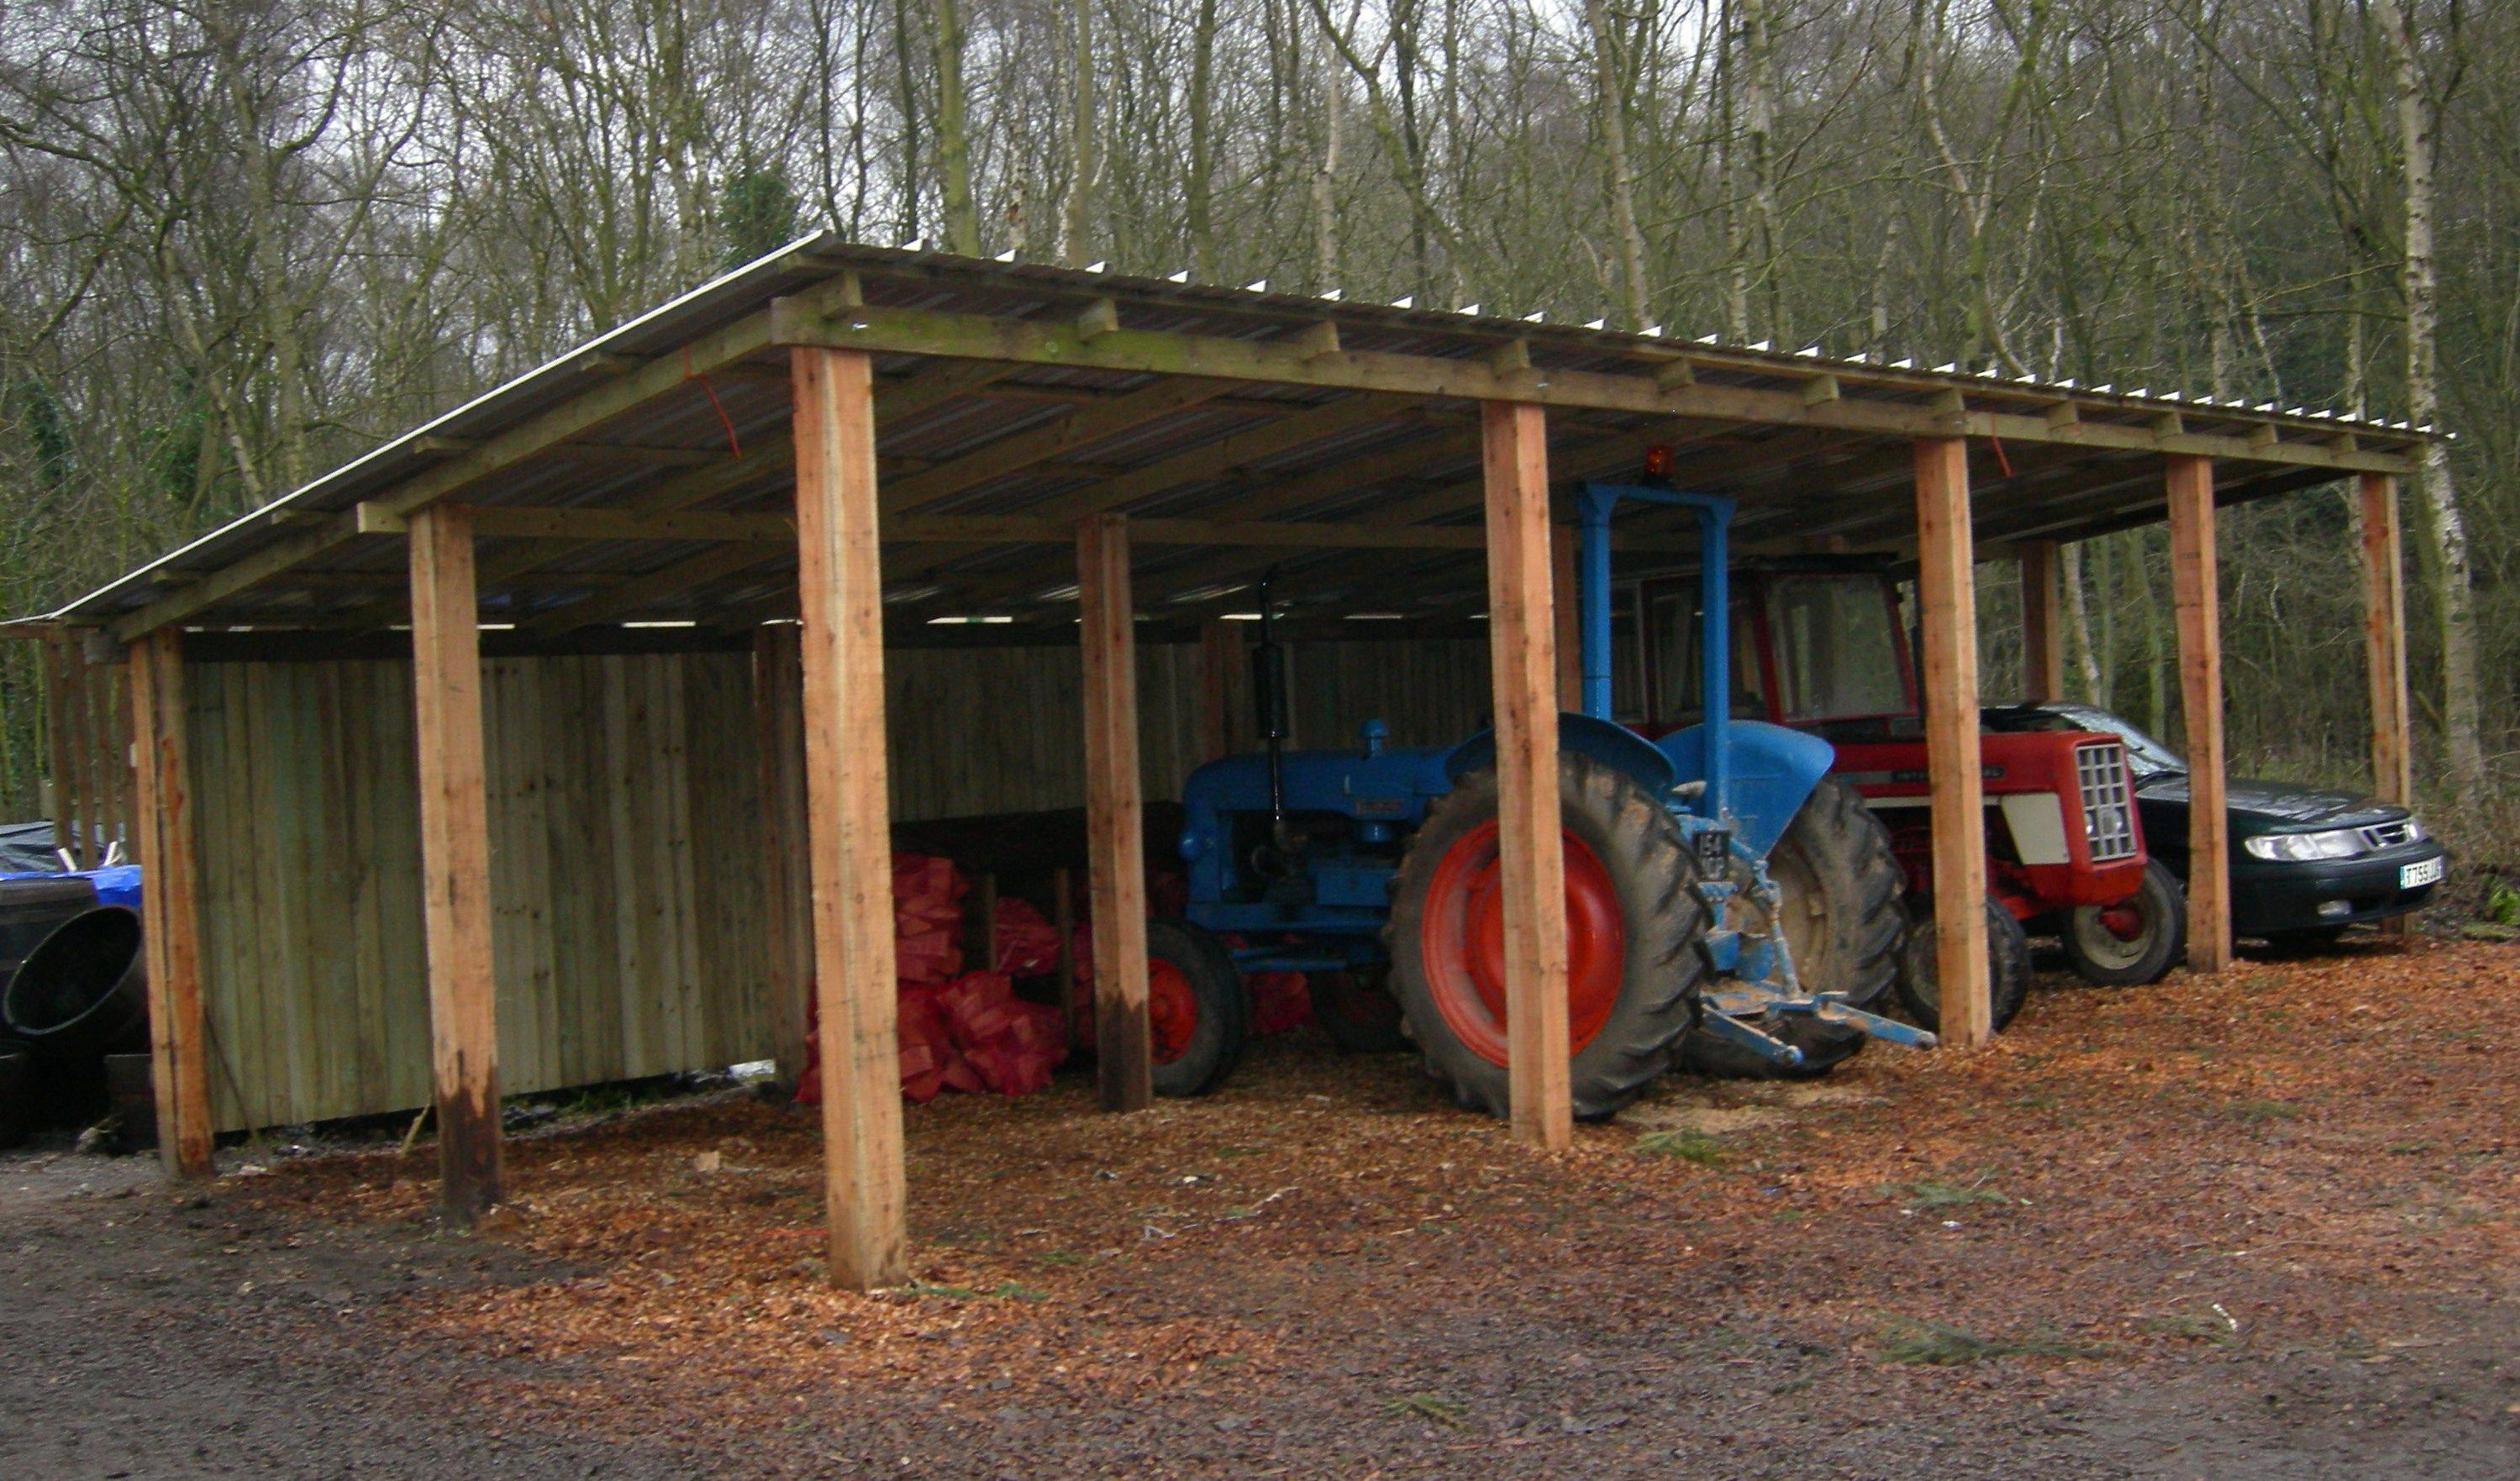 Tractor sheds for sale - Image result for tractor shed